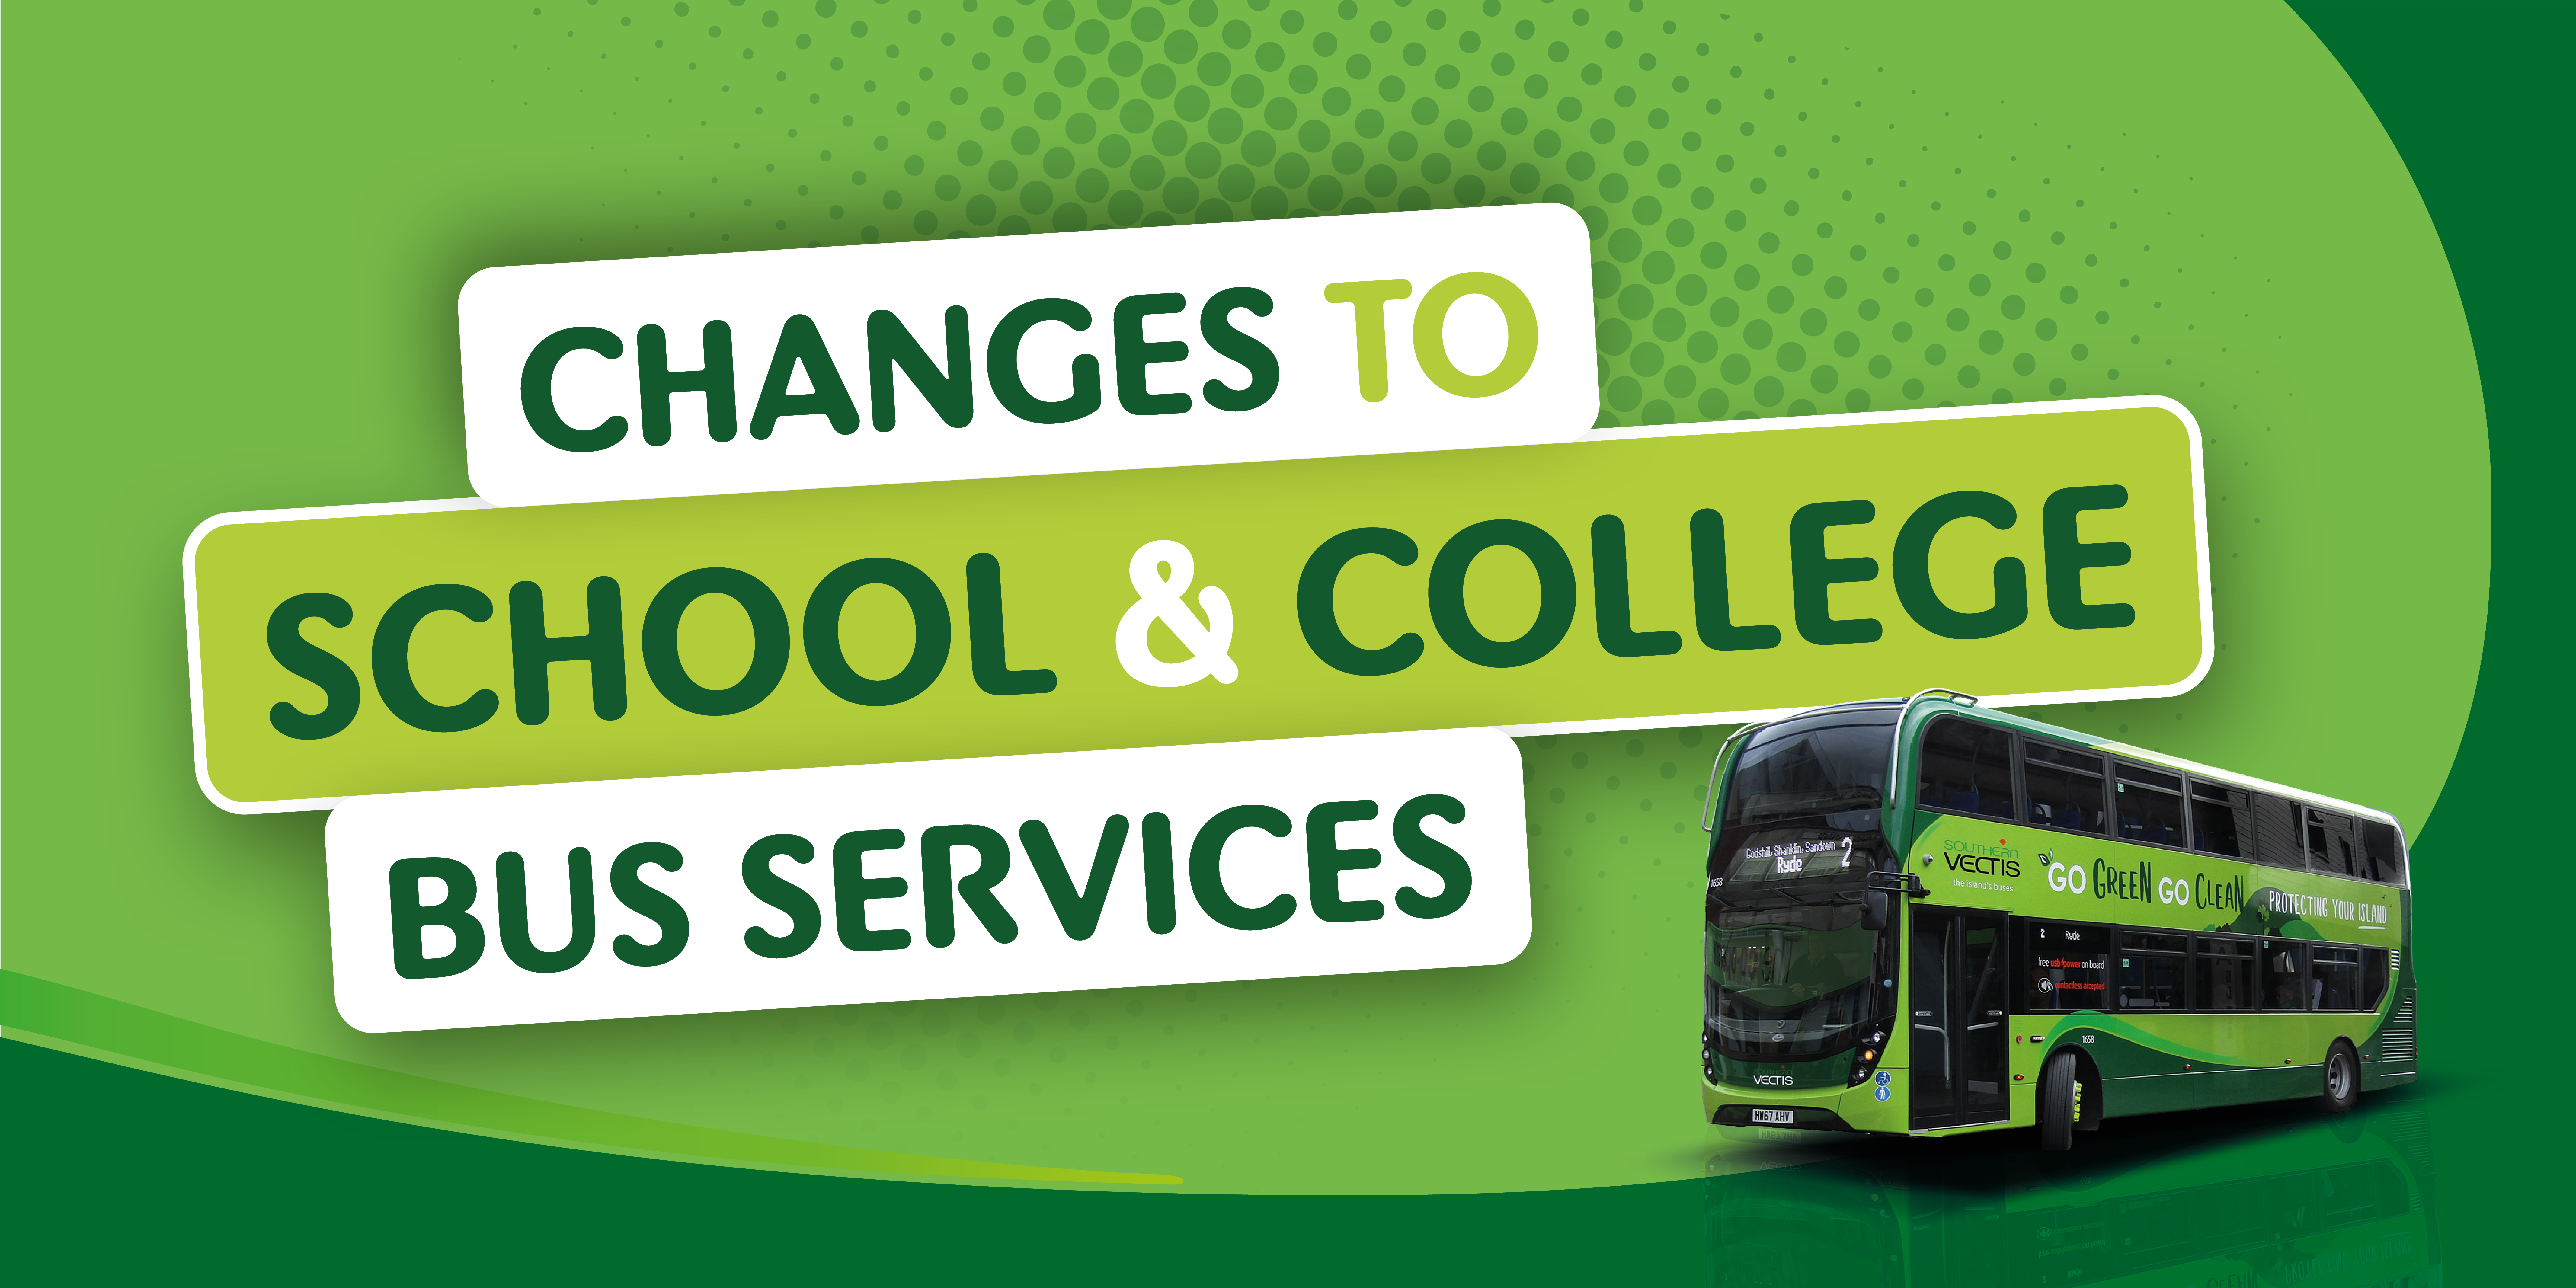 Changes to School & college Bus services